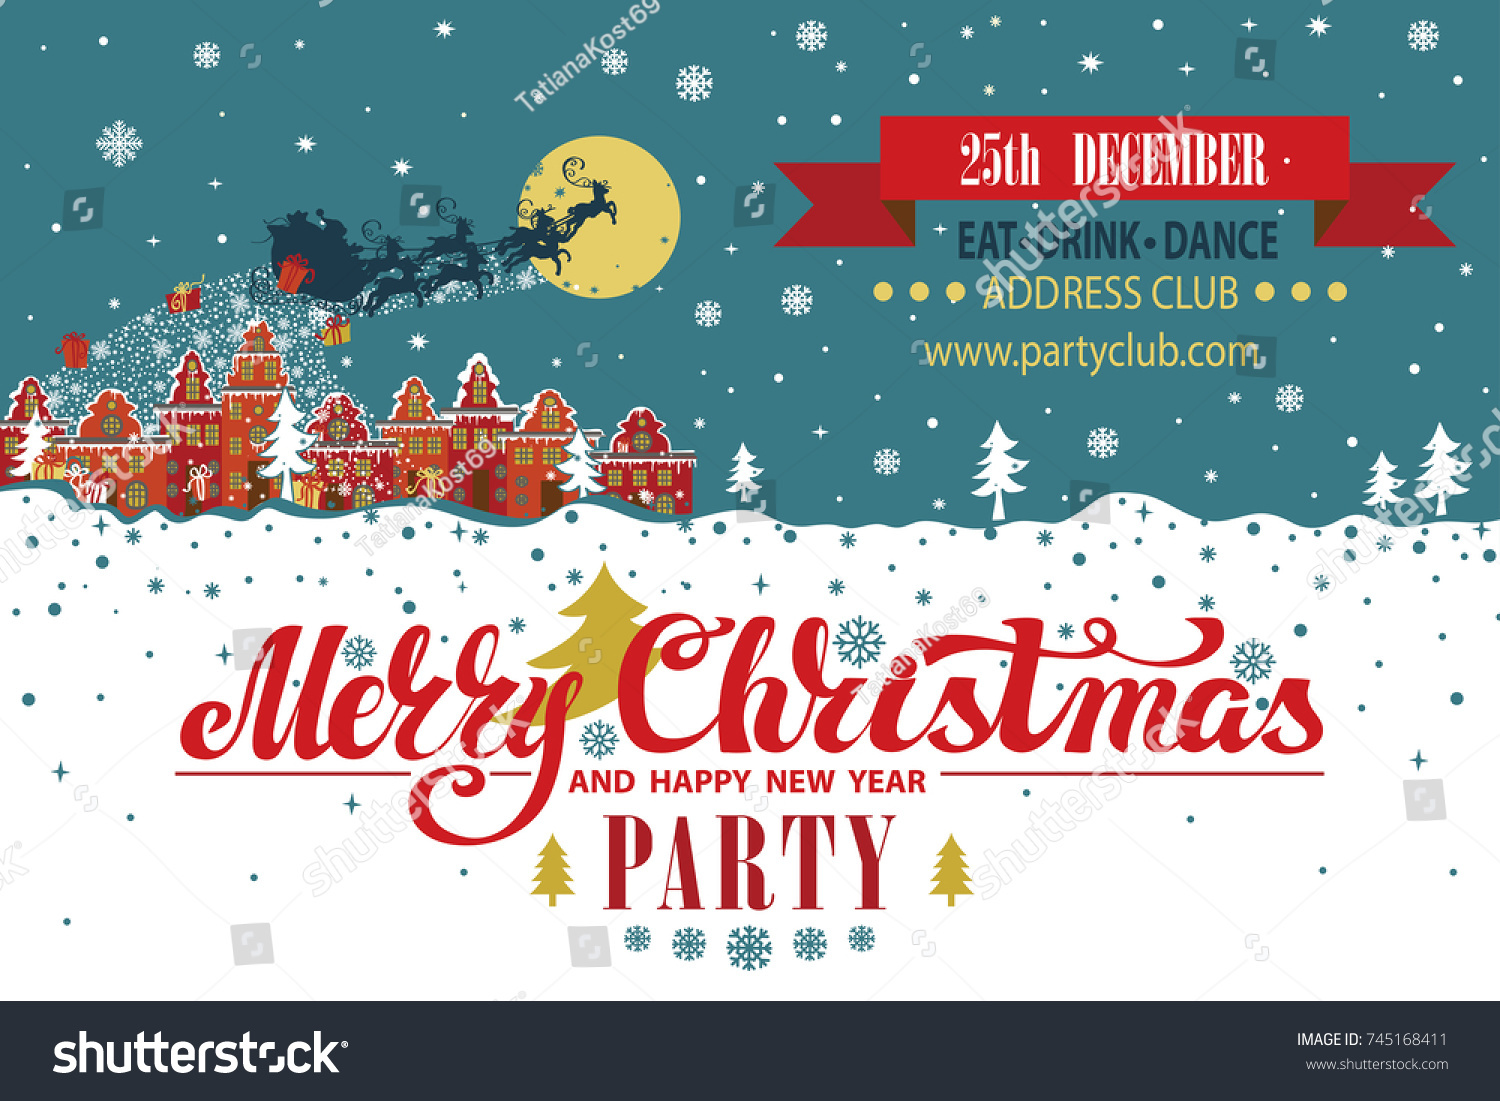 Christmas Party Invitationcard Year Template Santa Claus Image